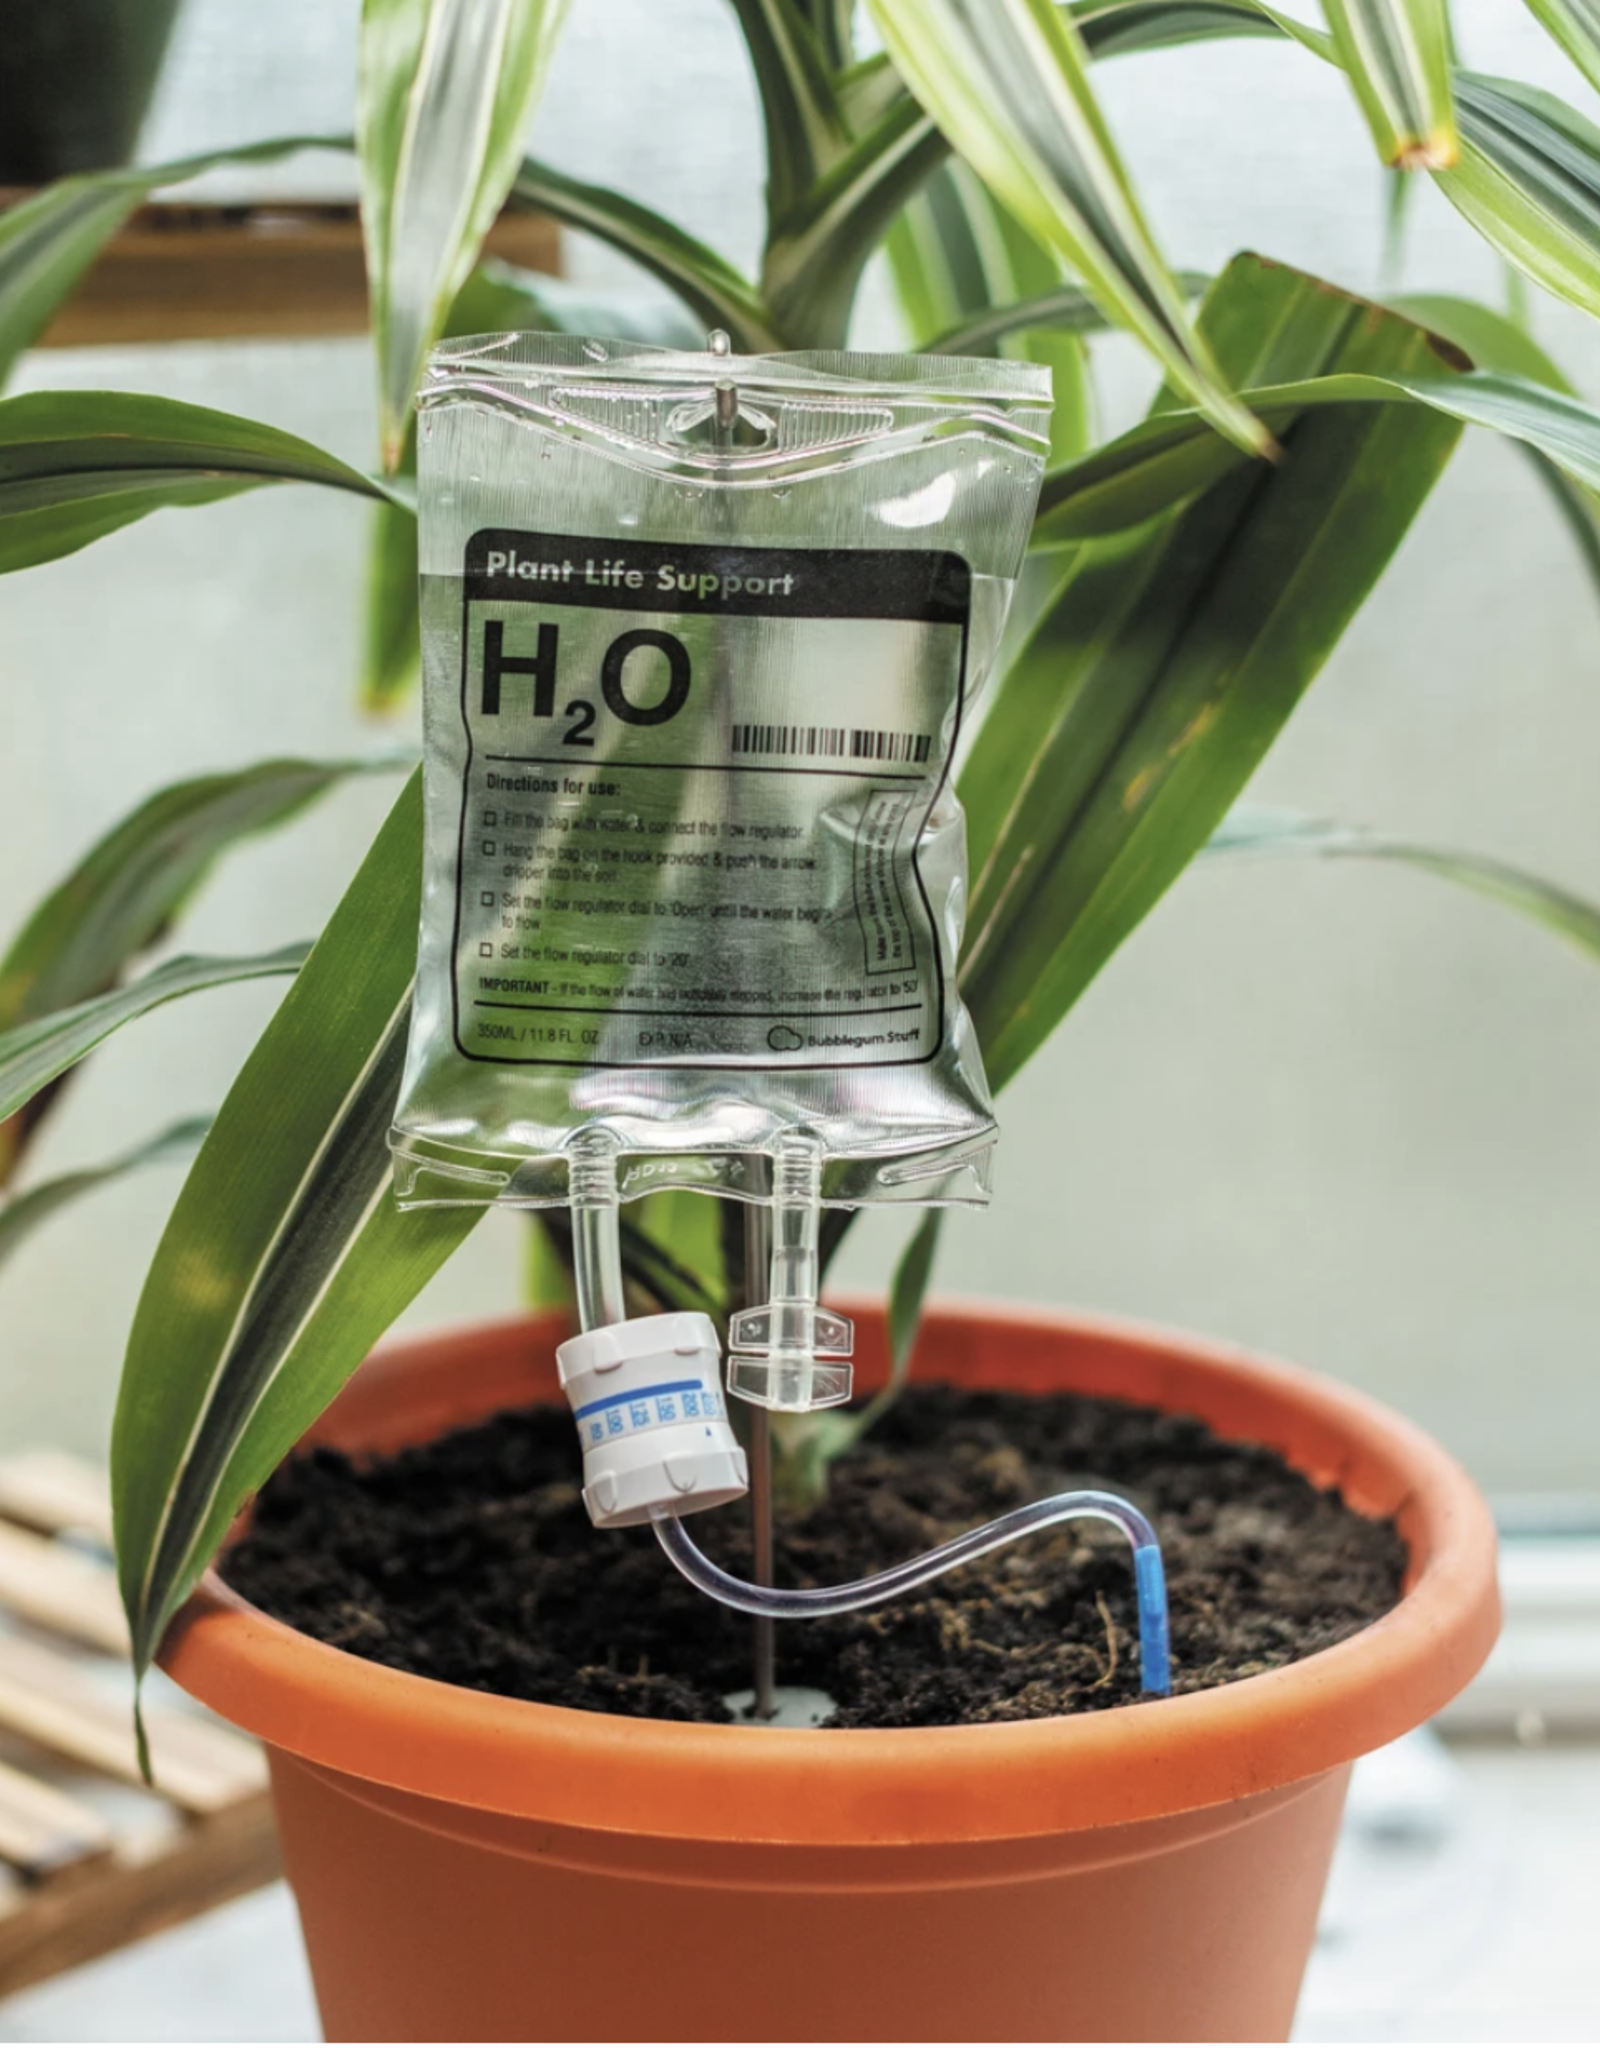 Plant Life Support